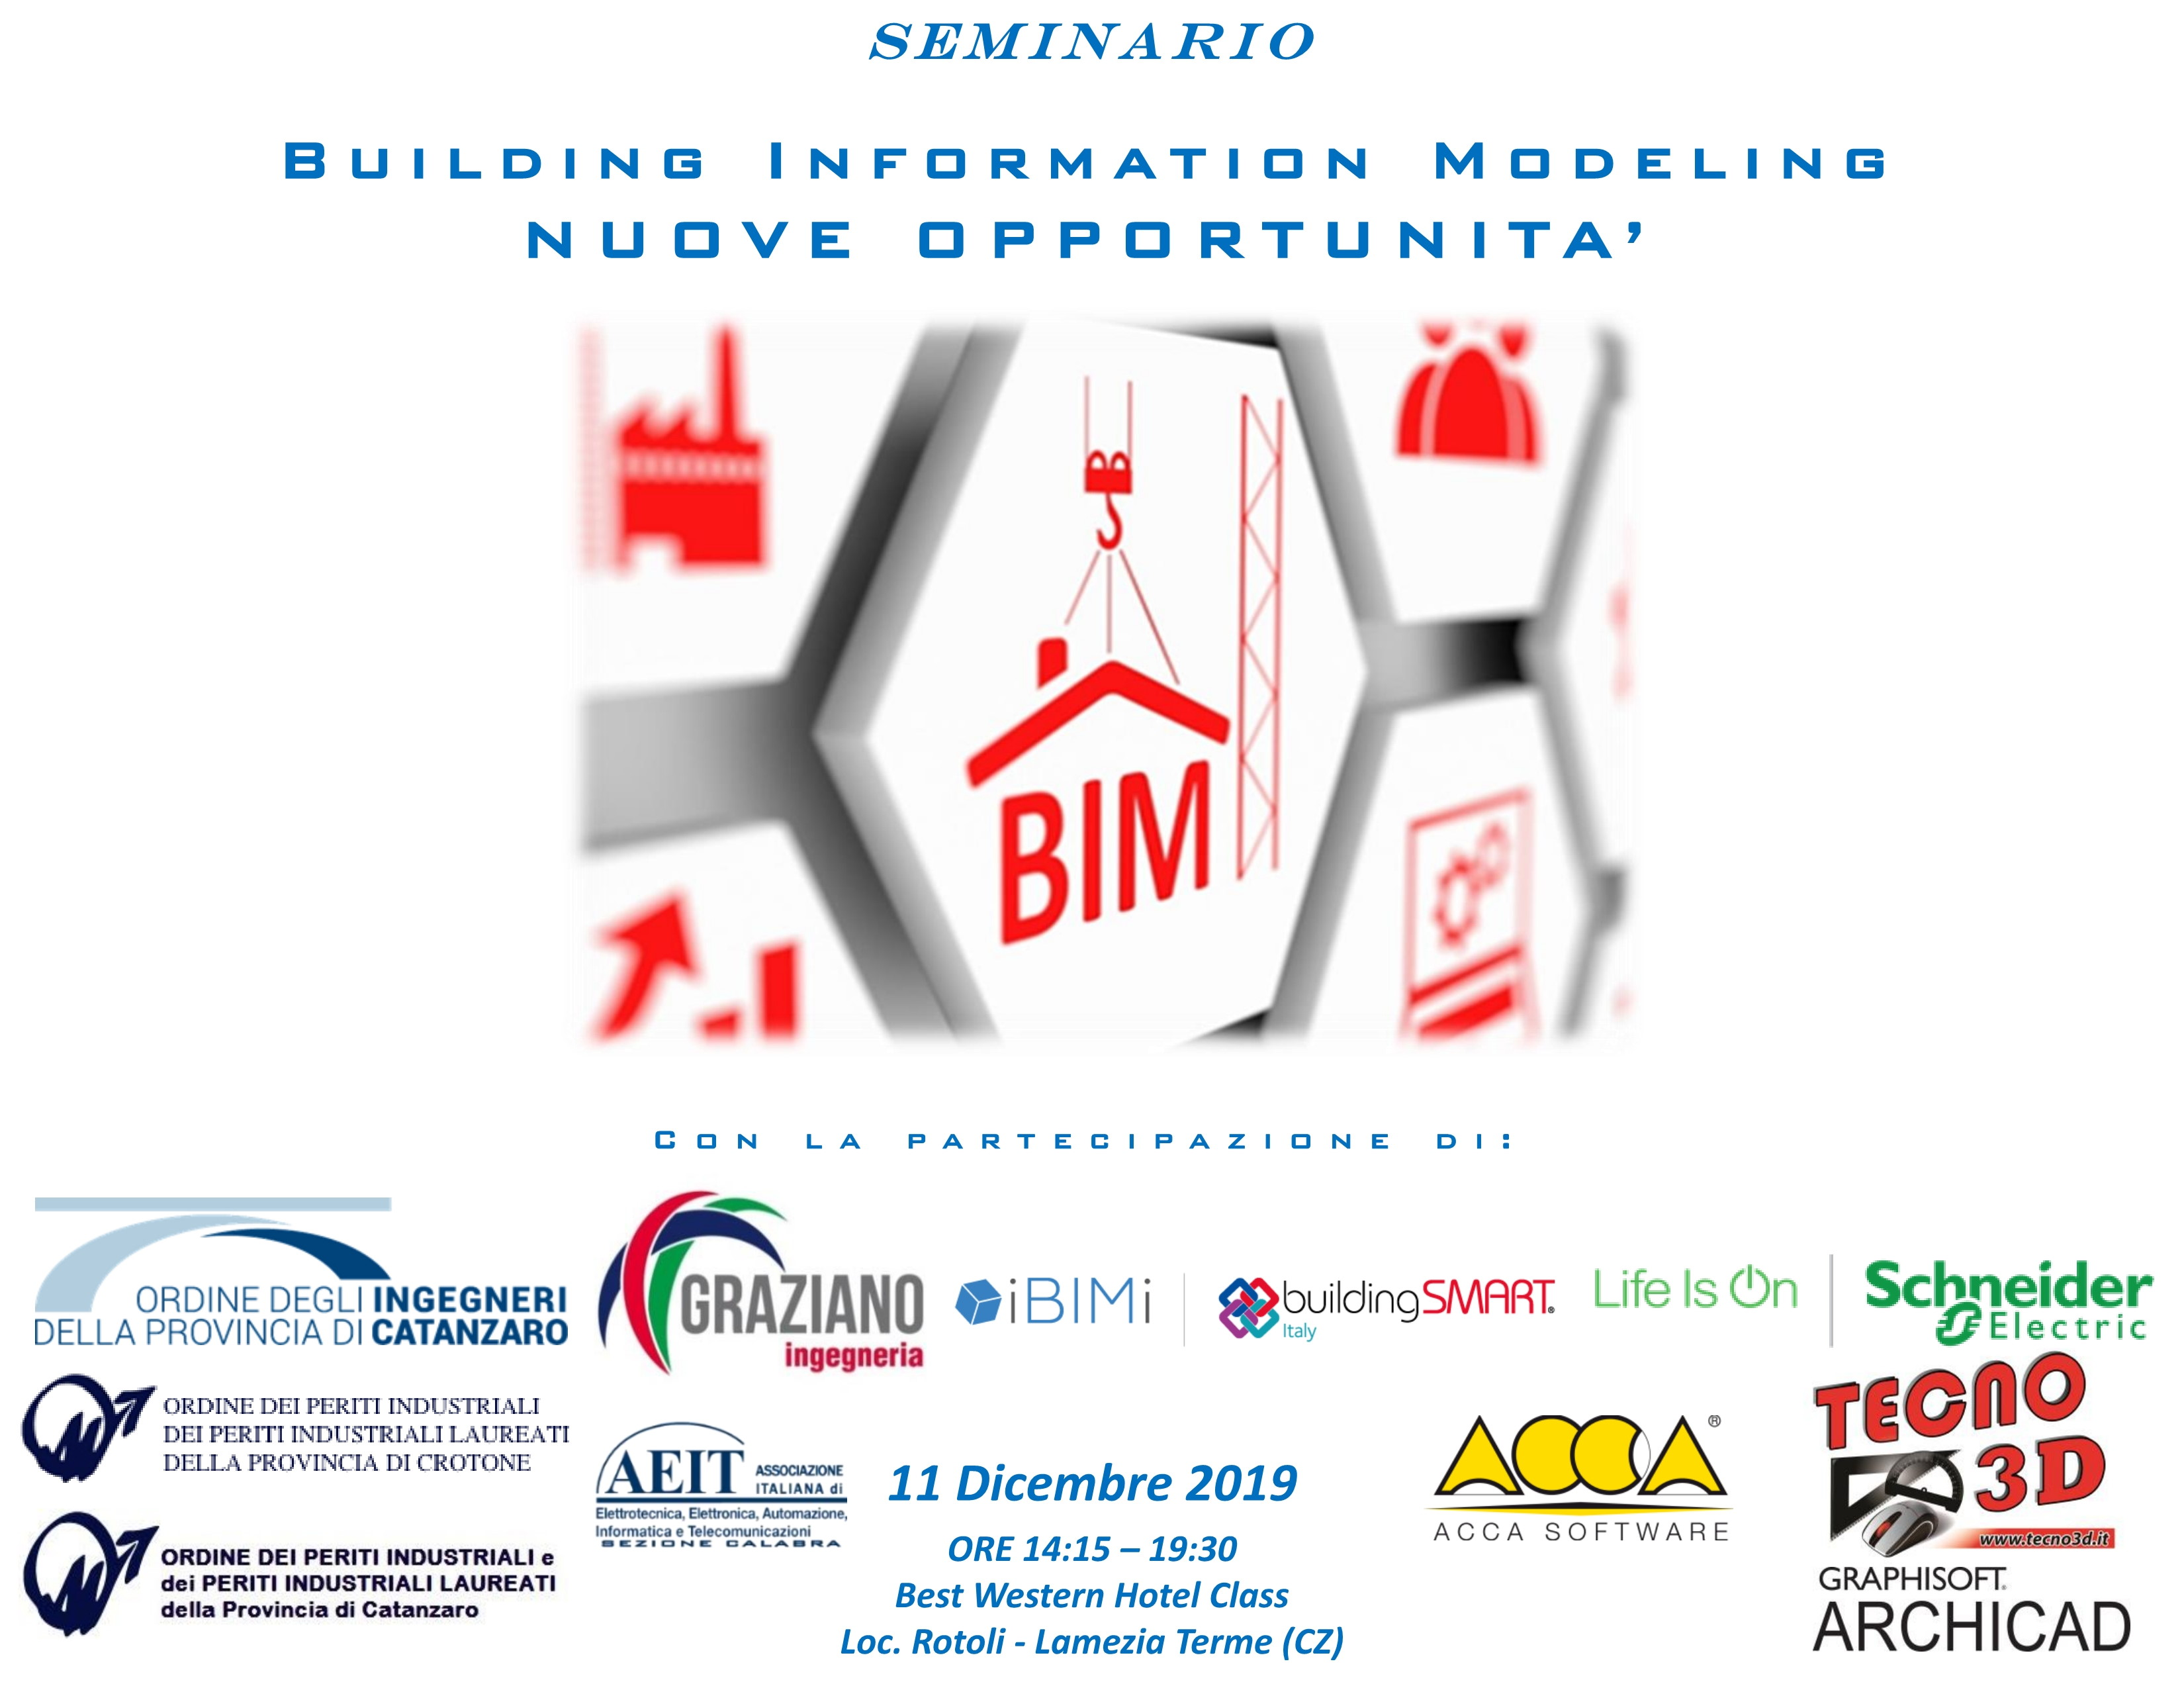 Building Information Modeling - Nuove opportunità